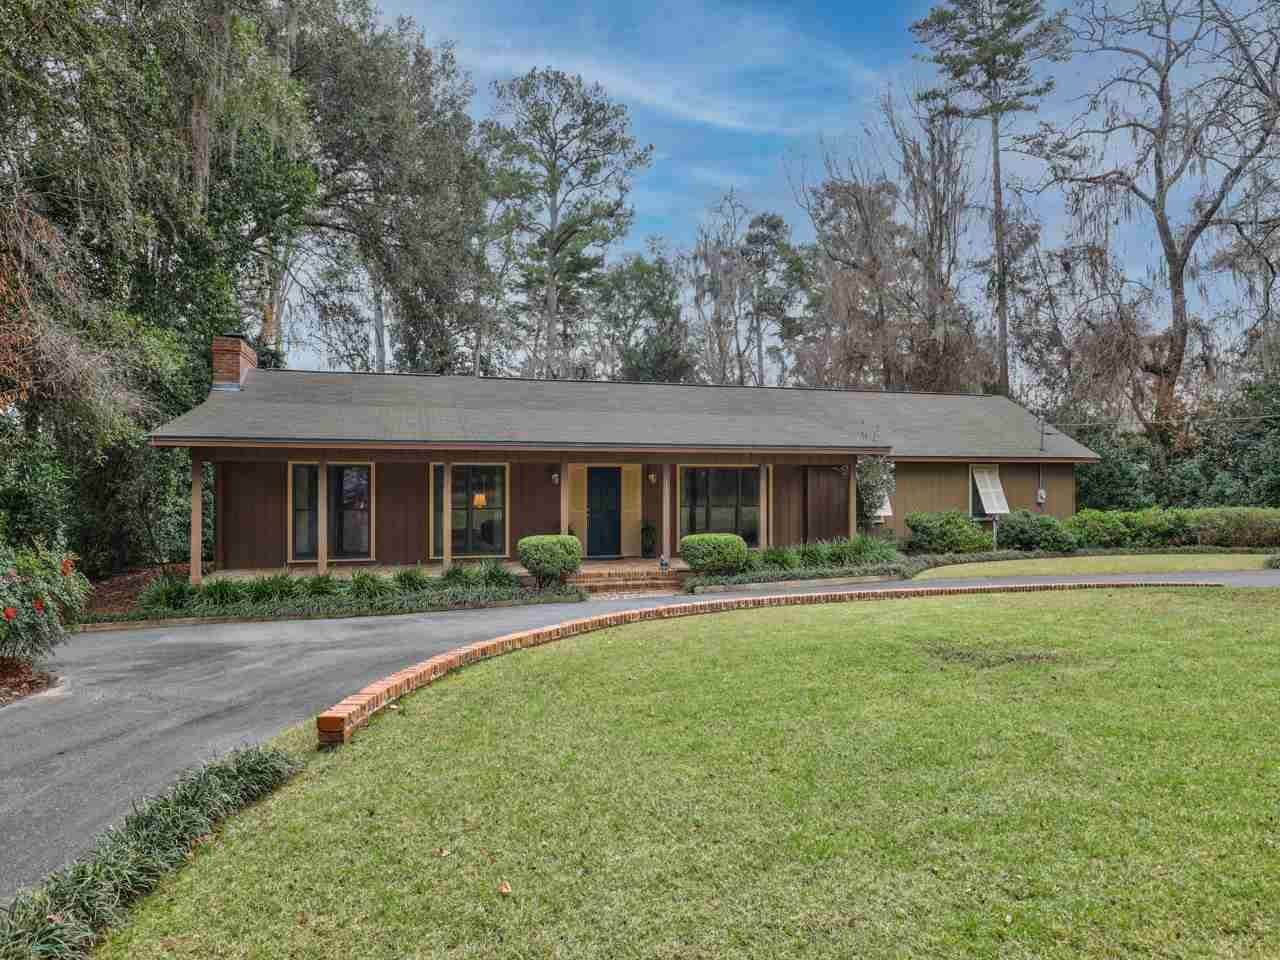 Photo of 1805 Linden Lane, TALLAHASSEE, FL 32308 (MLS # 327653)